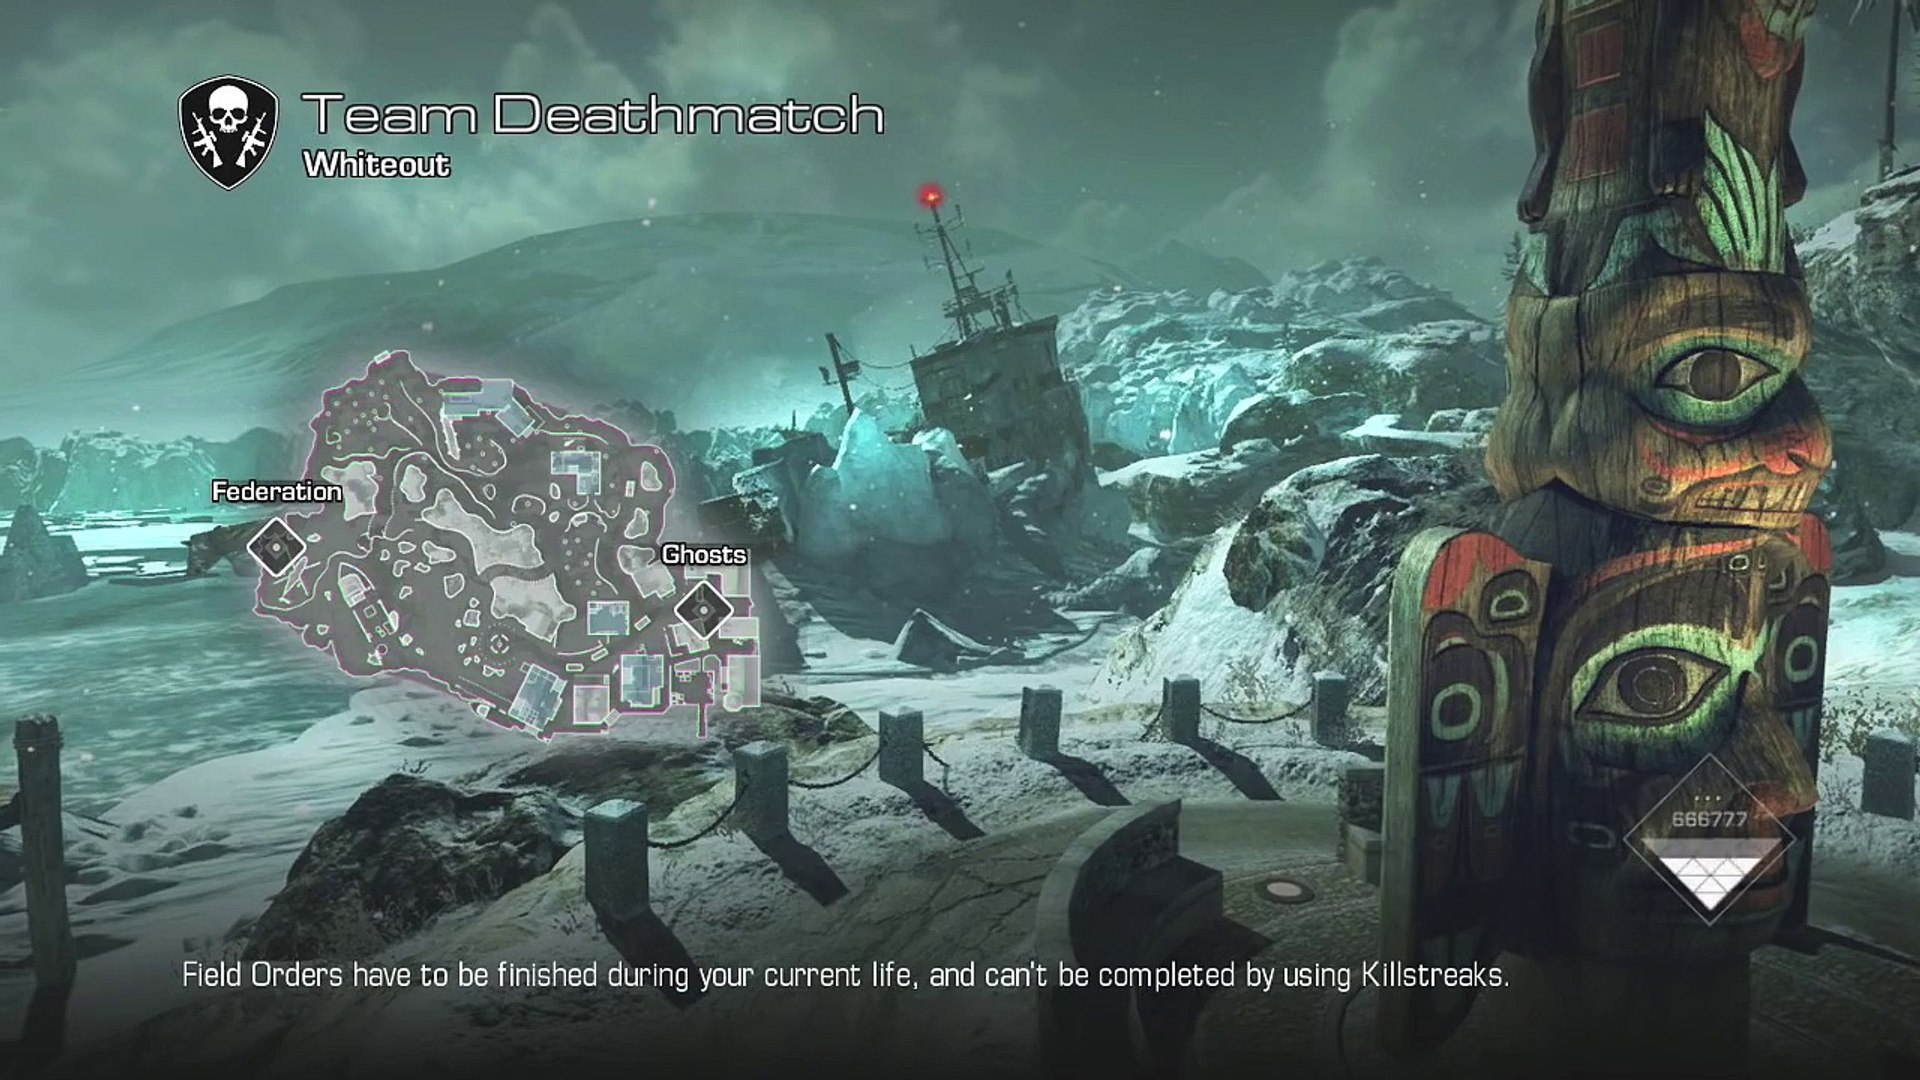 Hiding Spots Glitches On Whiteout Call Of Duty Ghosts Video